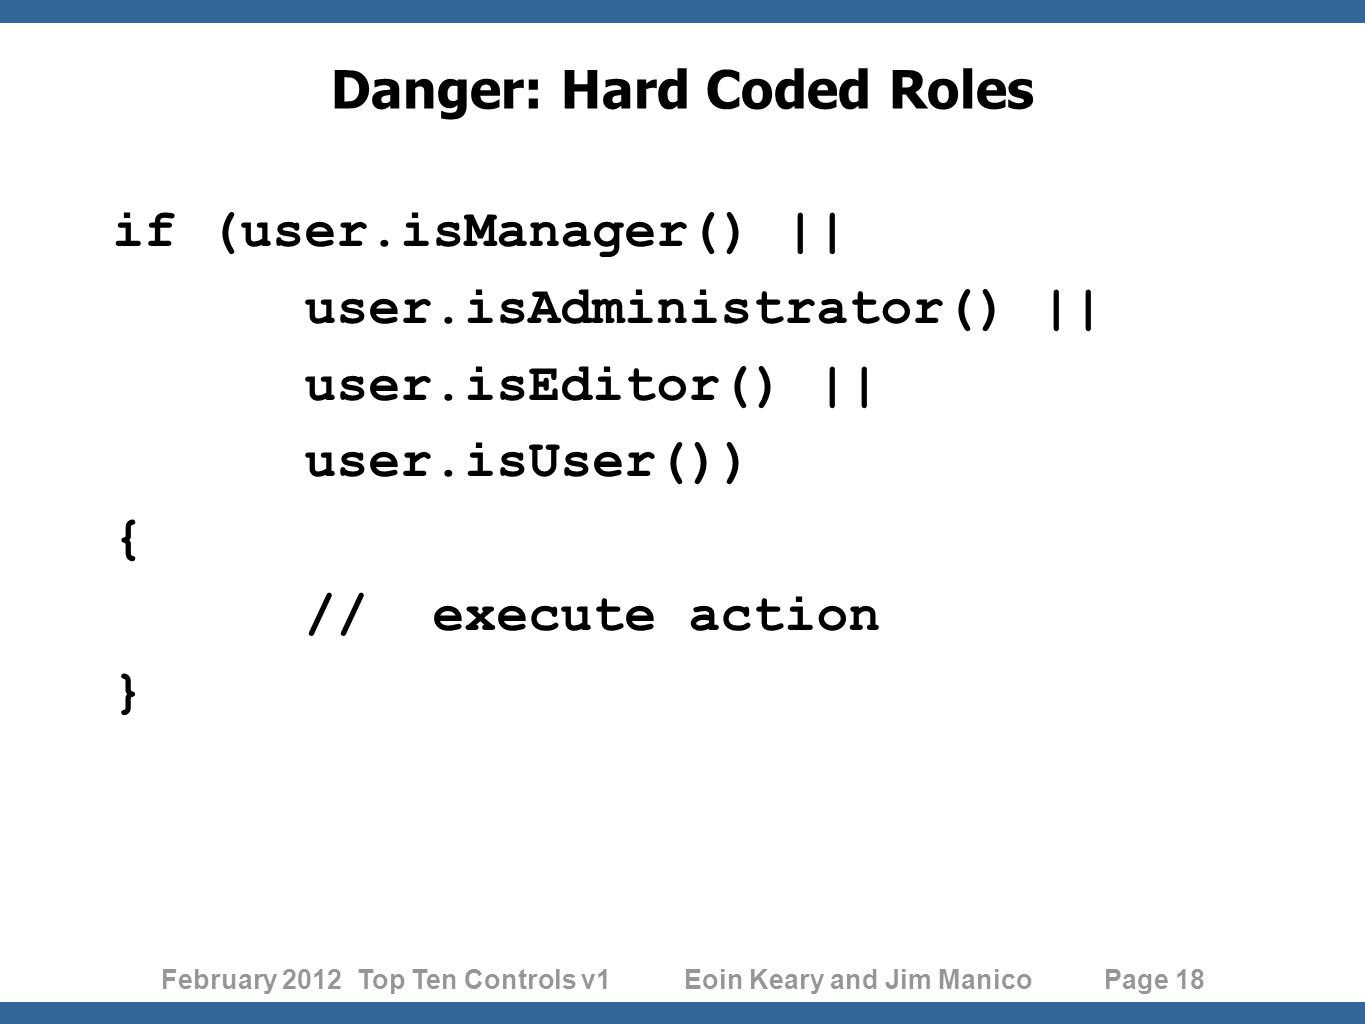 February 2012 Top Ten Controls v1 Eoin Keary and Jim Manico Page 18 Danger: Hard Coded Roles if (user.isManager() || user.isAdministrator() || user.isEditor() || user.isUser()) { // execute action }